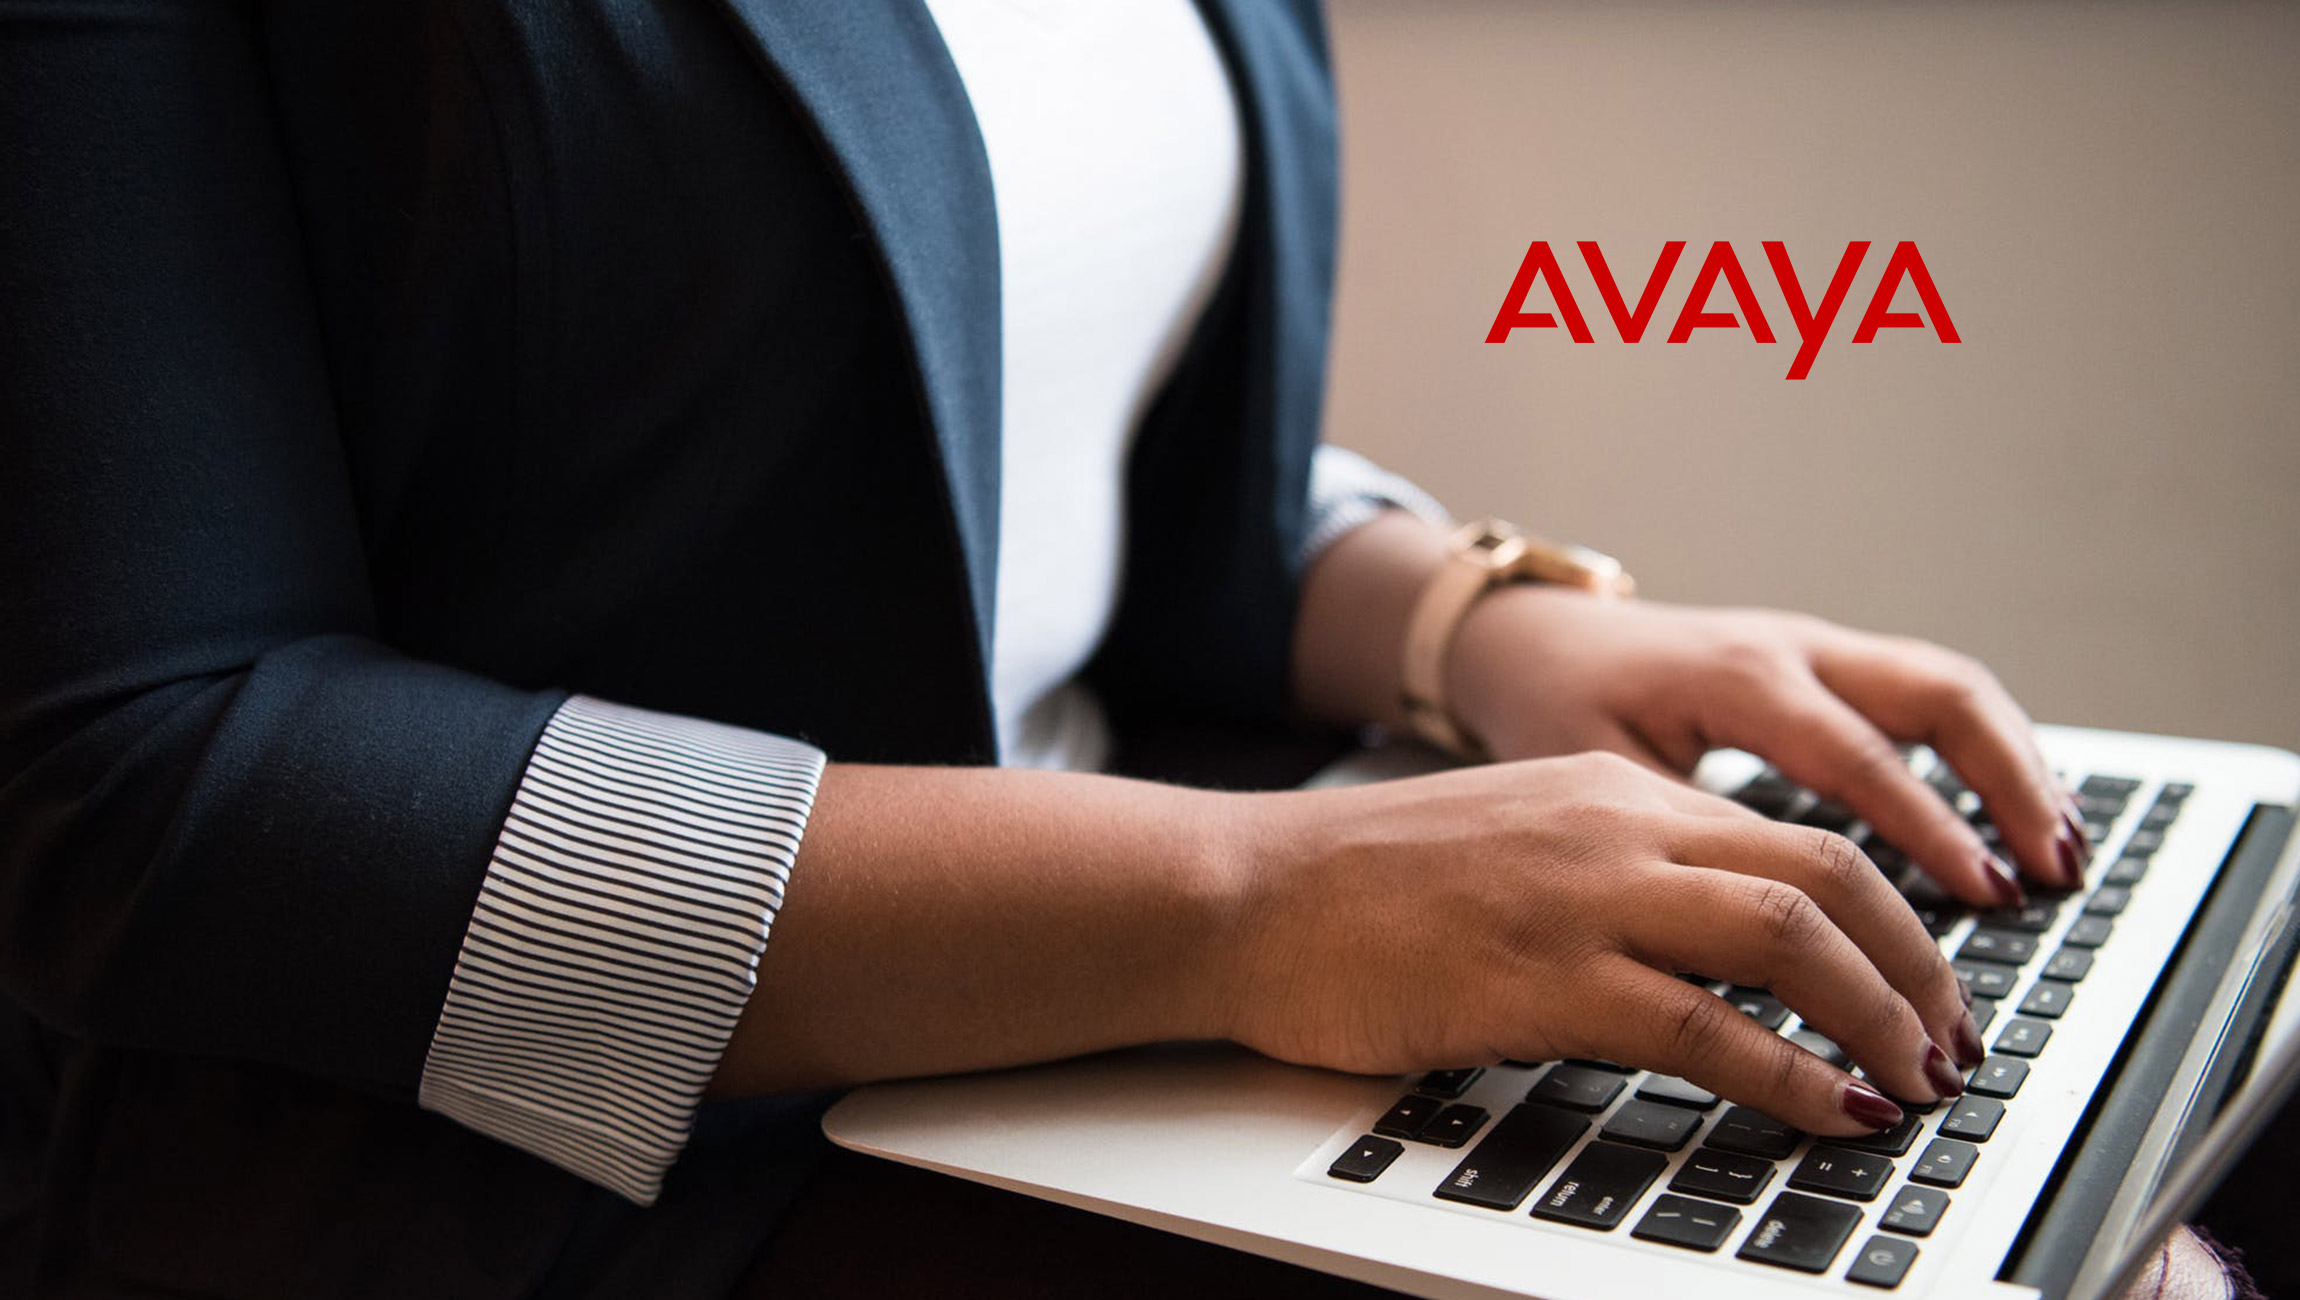 Avaya Identified as a Leader in Aragon Research Globe for Intelligent Contact Center